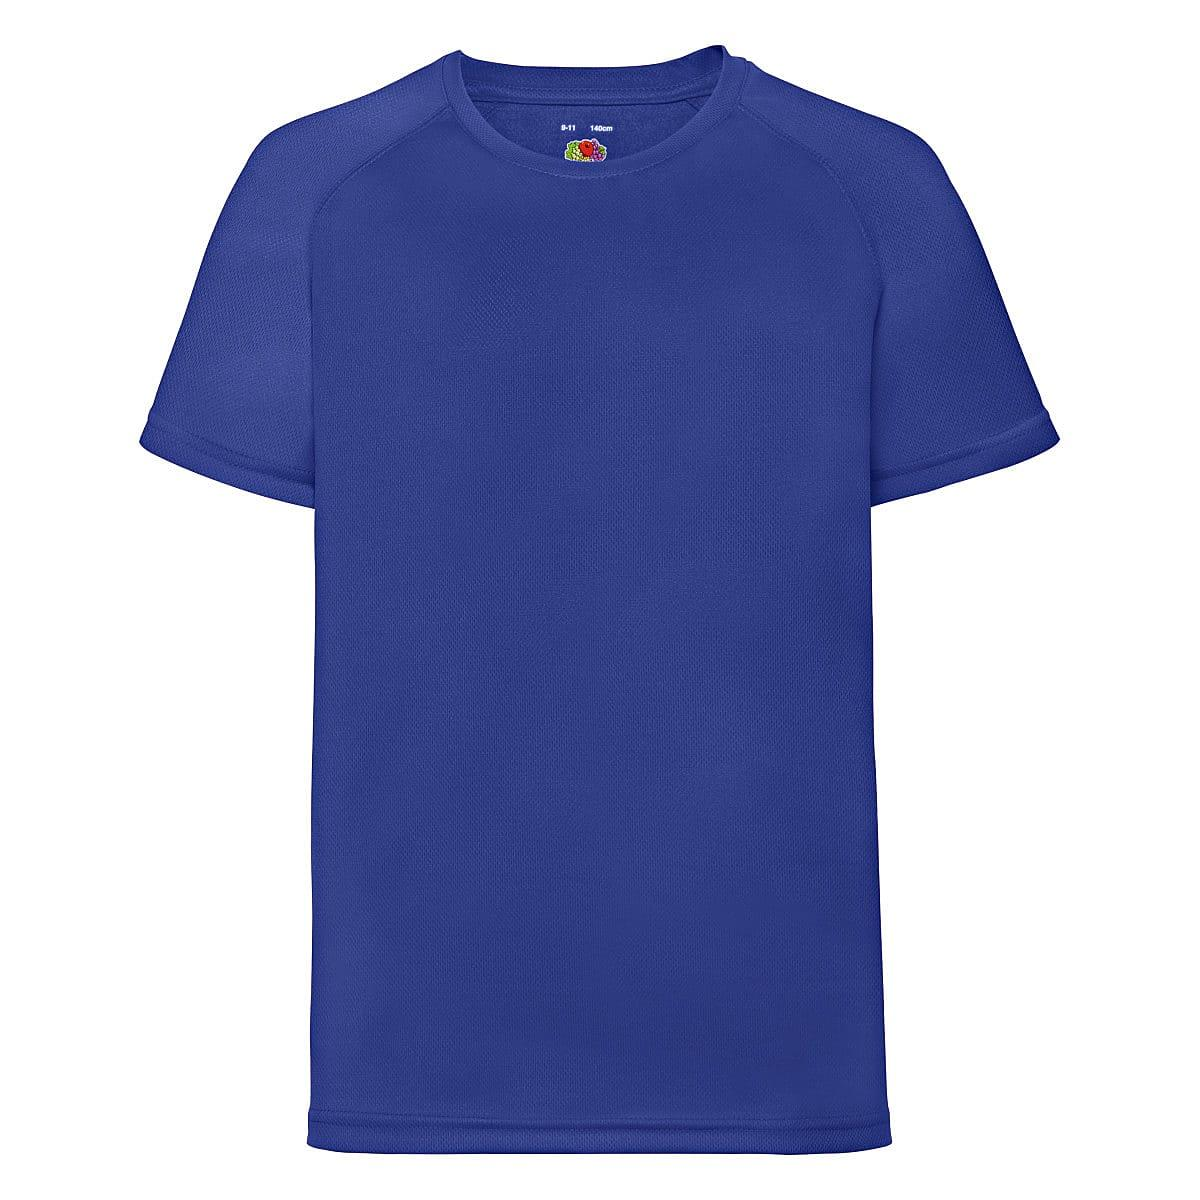 Fruit Of The Loom Childrens Kids Performance T-Shirt in Royal Blue (Product Code: 61013)